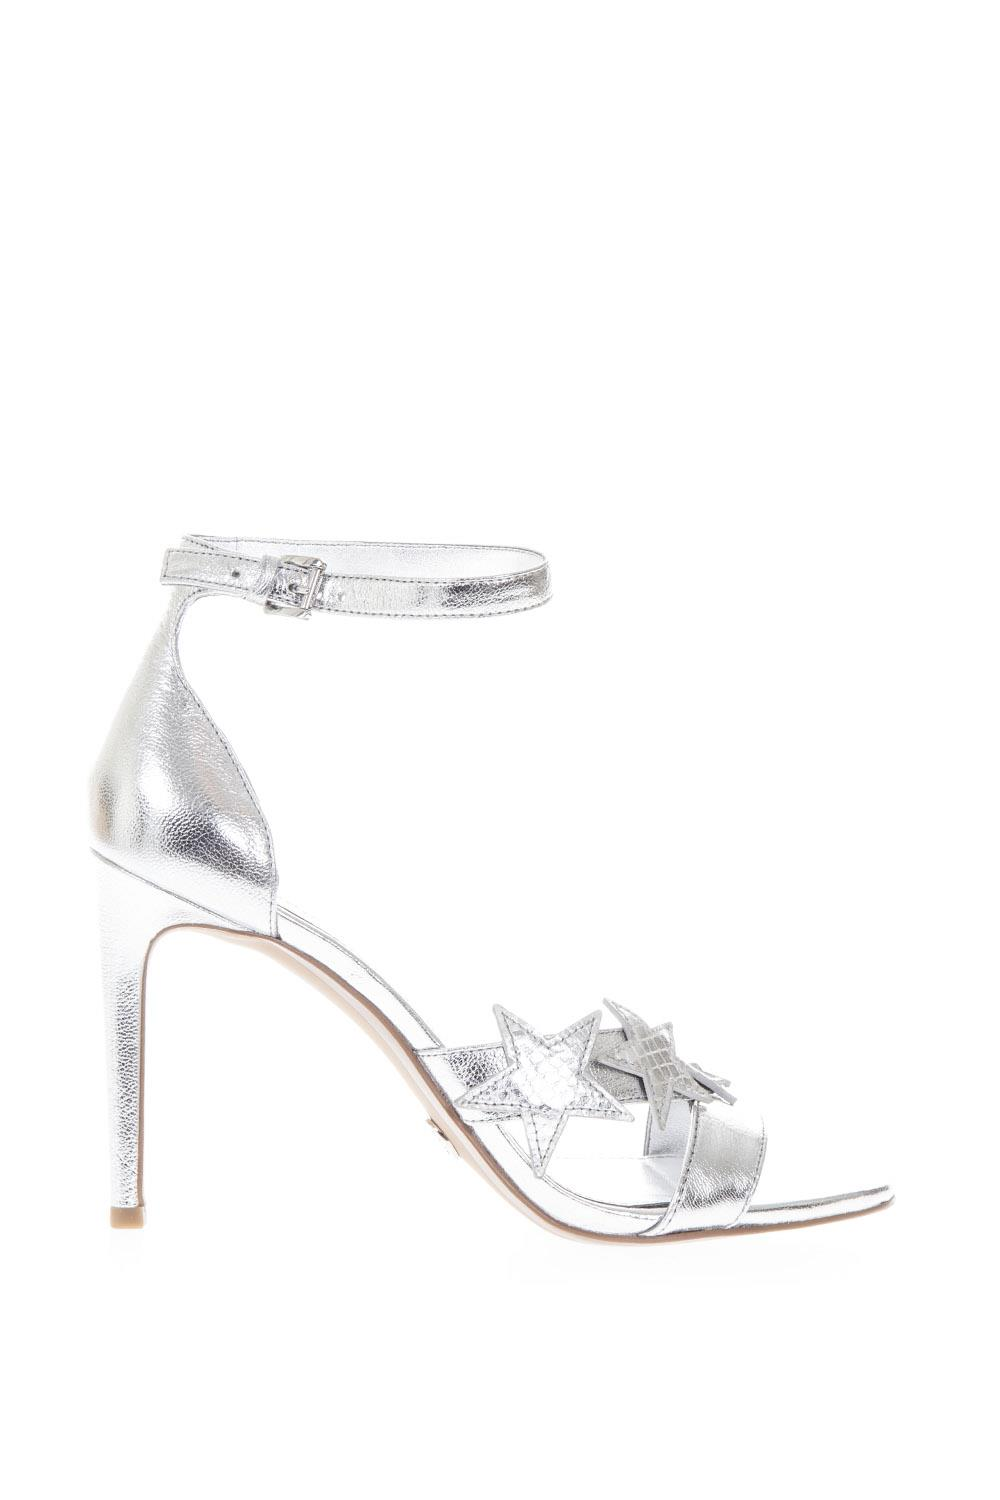 b104e0a5355 SILVER STARS SANDALS IN LEATHER SS 2018 - MICHAEL MICHAEL KORS - Boutique  Galiano